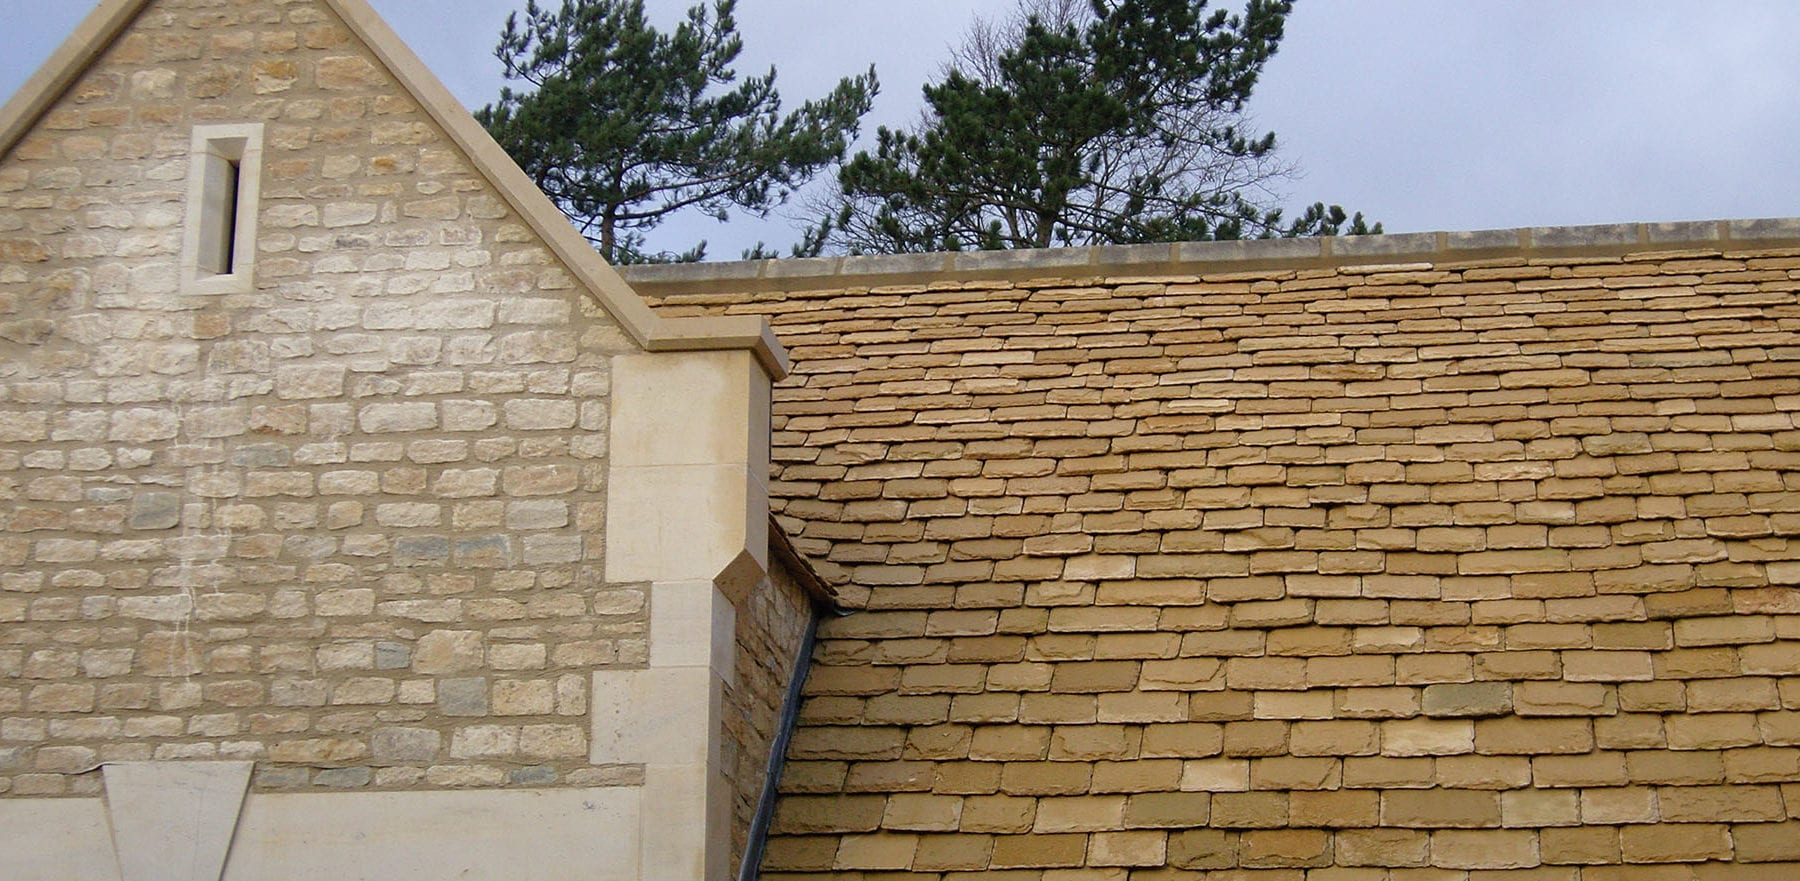 Lifestiles - Natural Stone Roof Tiles - The Stables, England 6